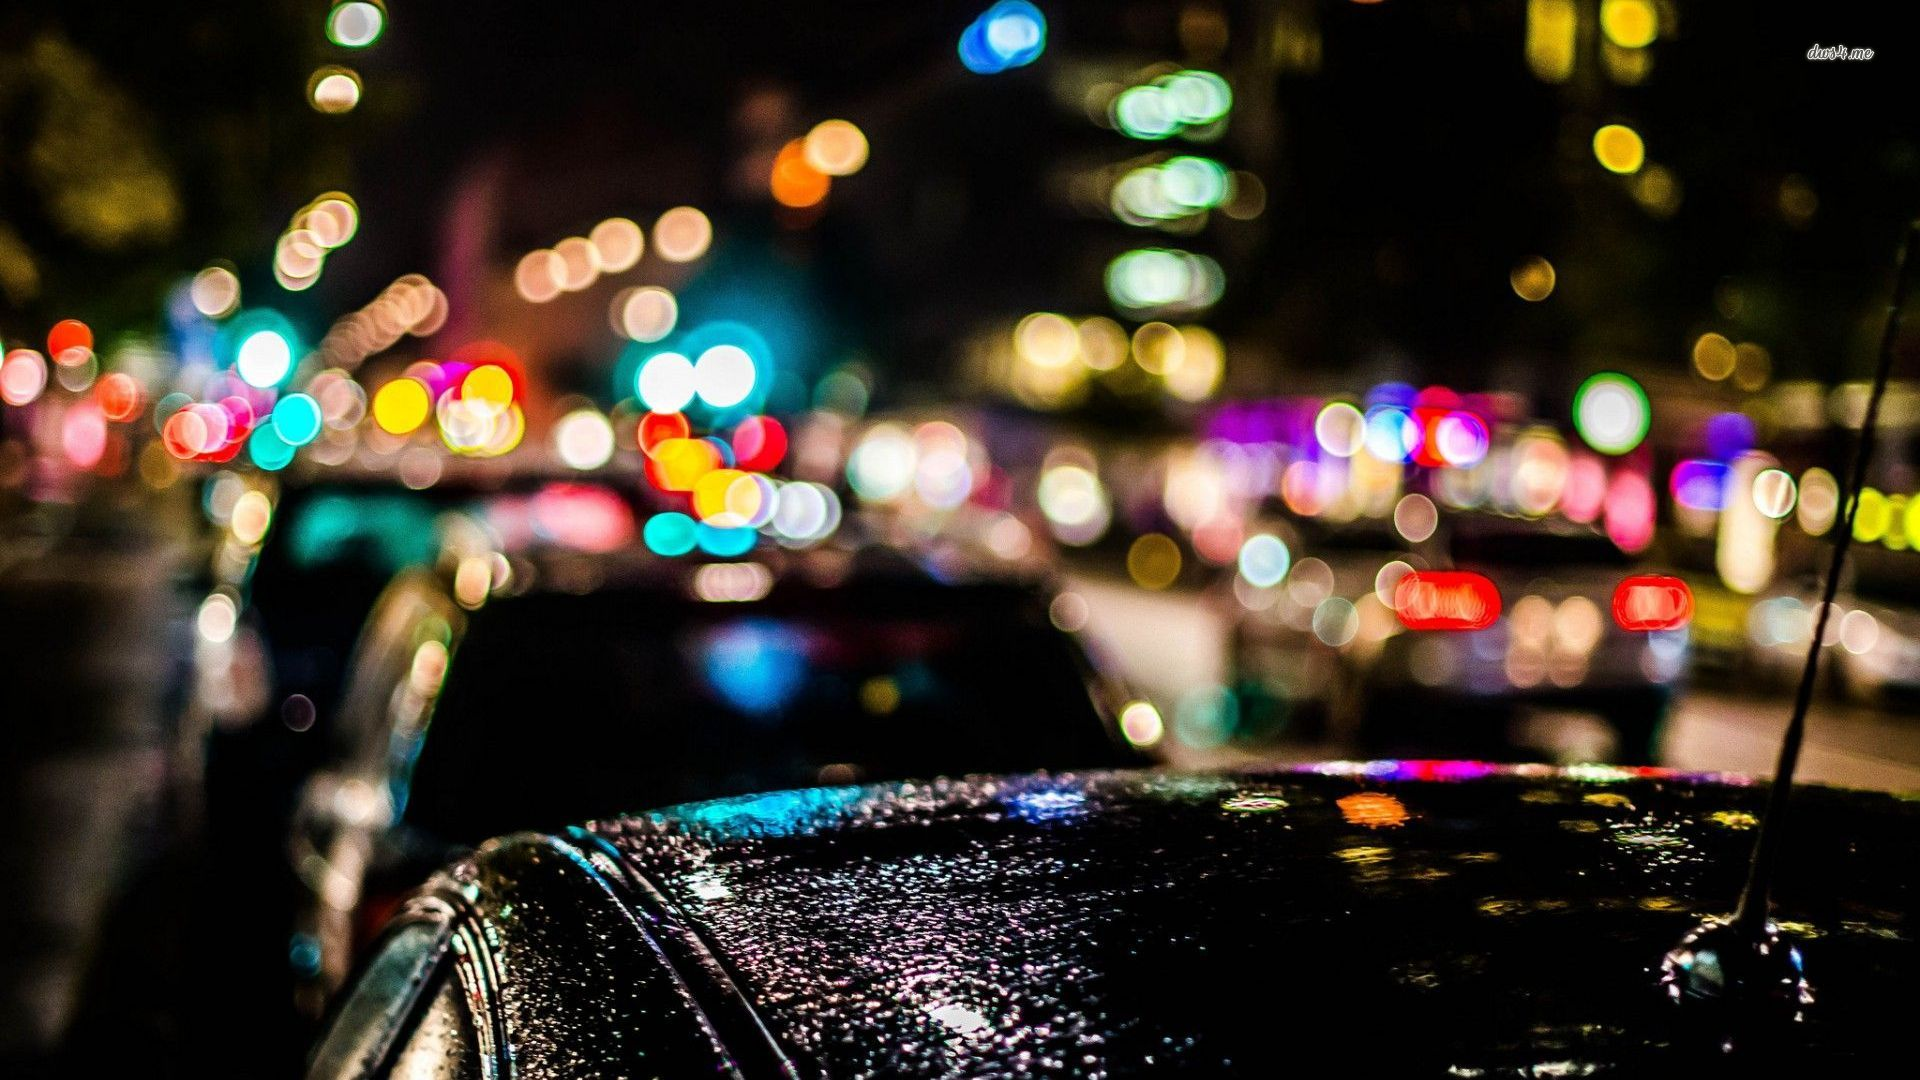 blurred city lights over the cars wallpaper photography wallpapers